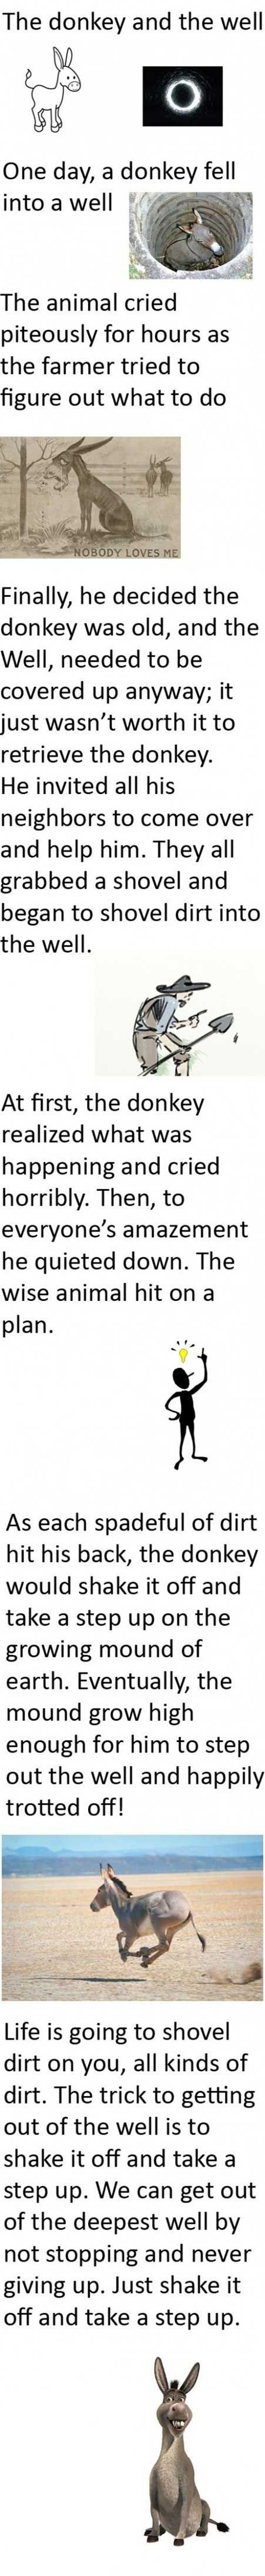 ONE DAY, A DONKEY FELL INTO A WELL..